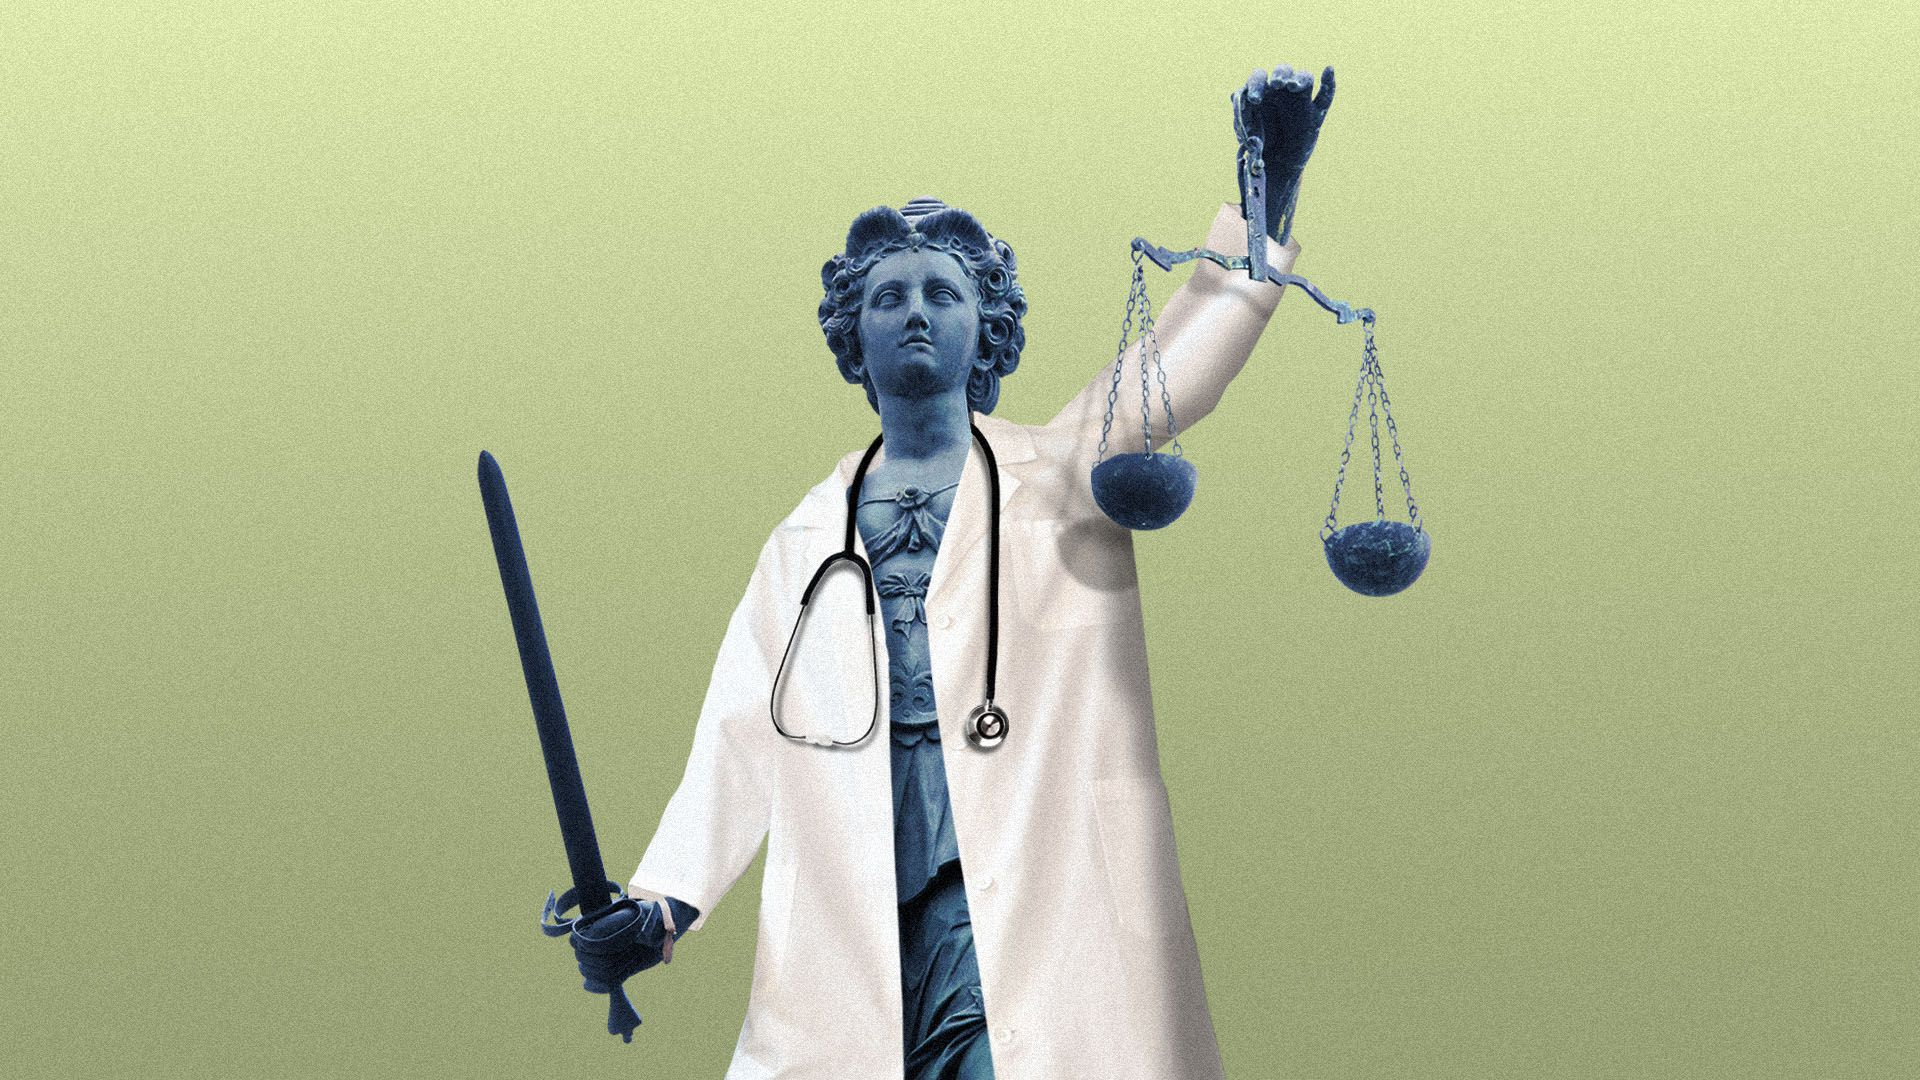 Illustration of a statue of Justice wearing a doctor's coat and a stethoscope